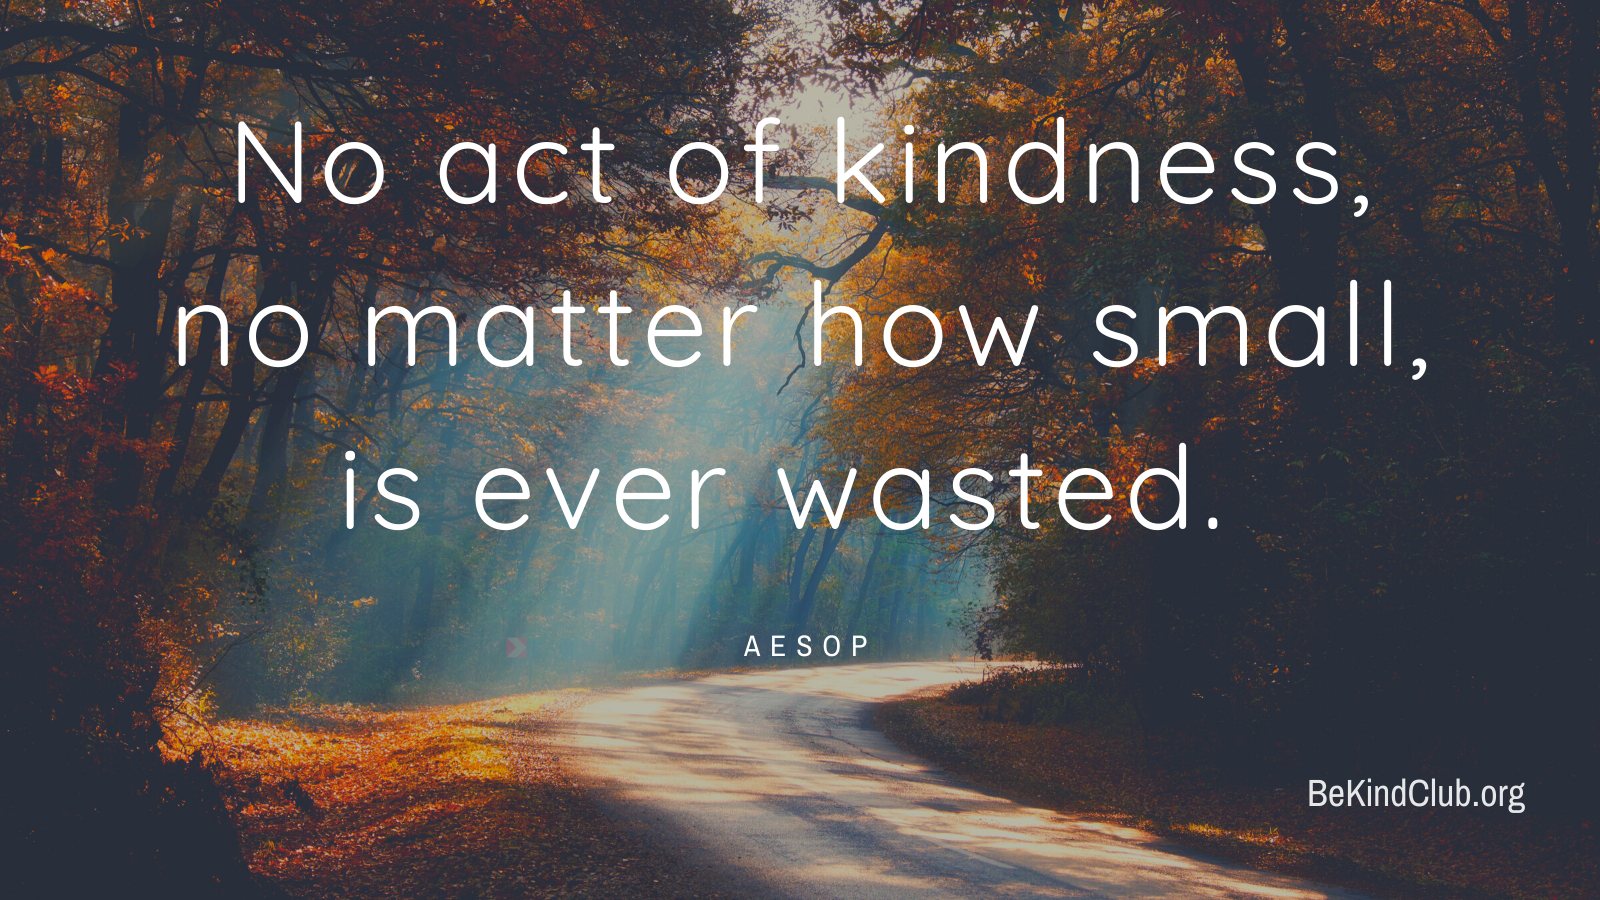 Coalition for human kindness Be Kind Club